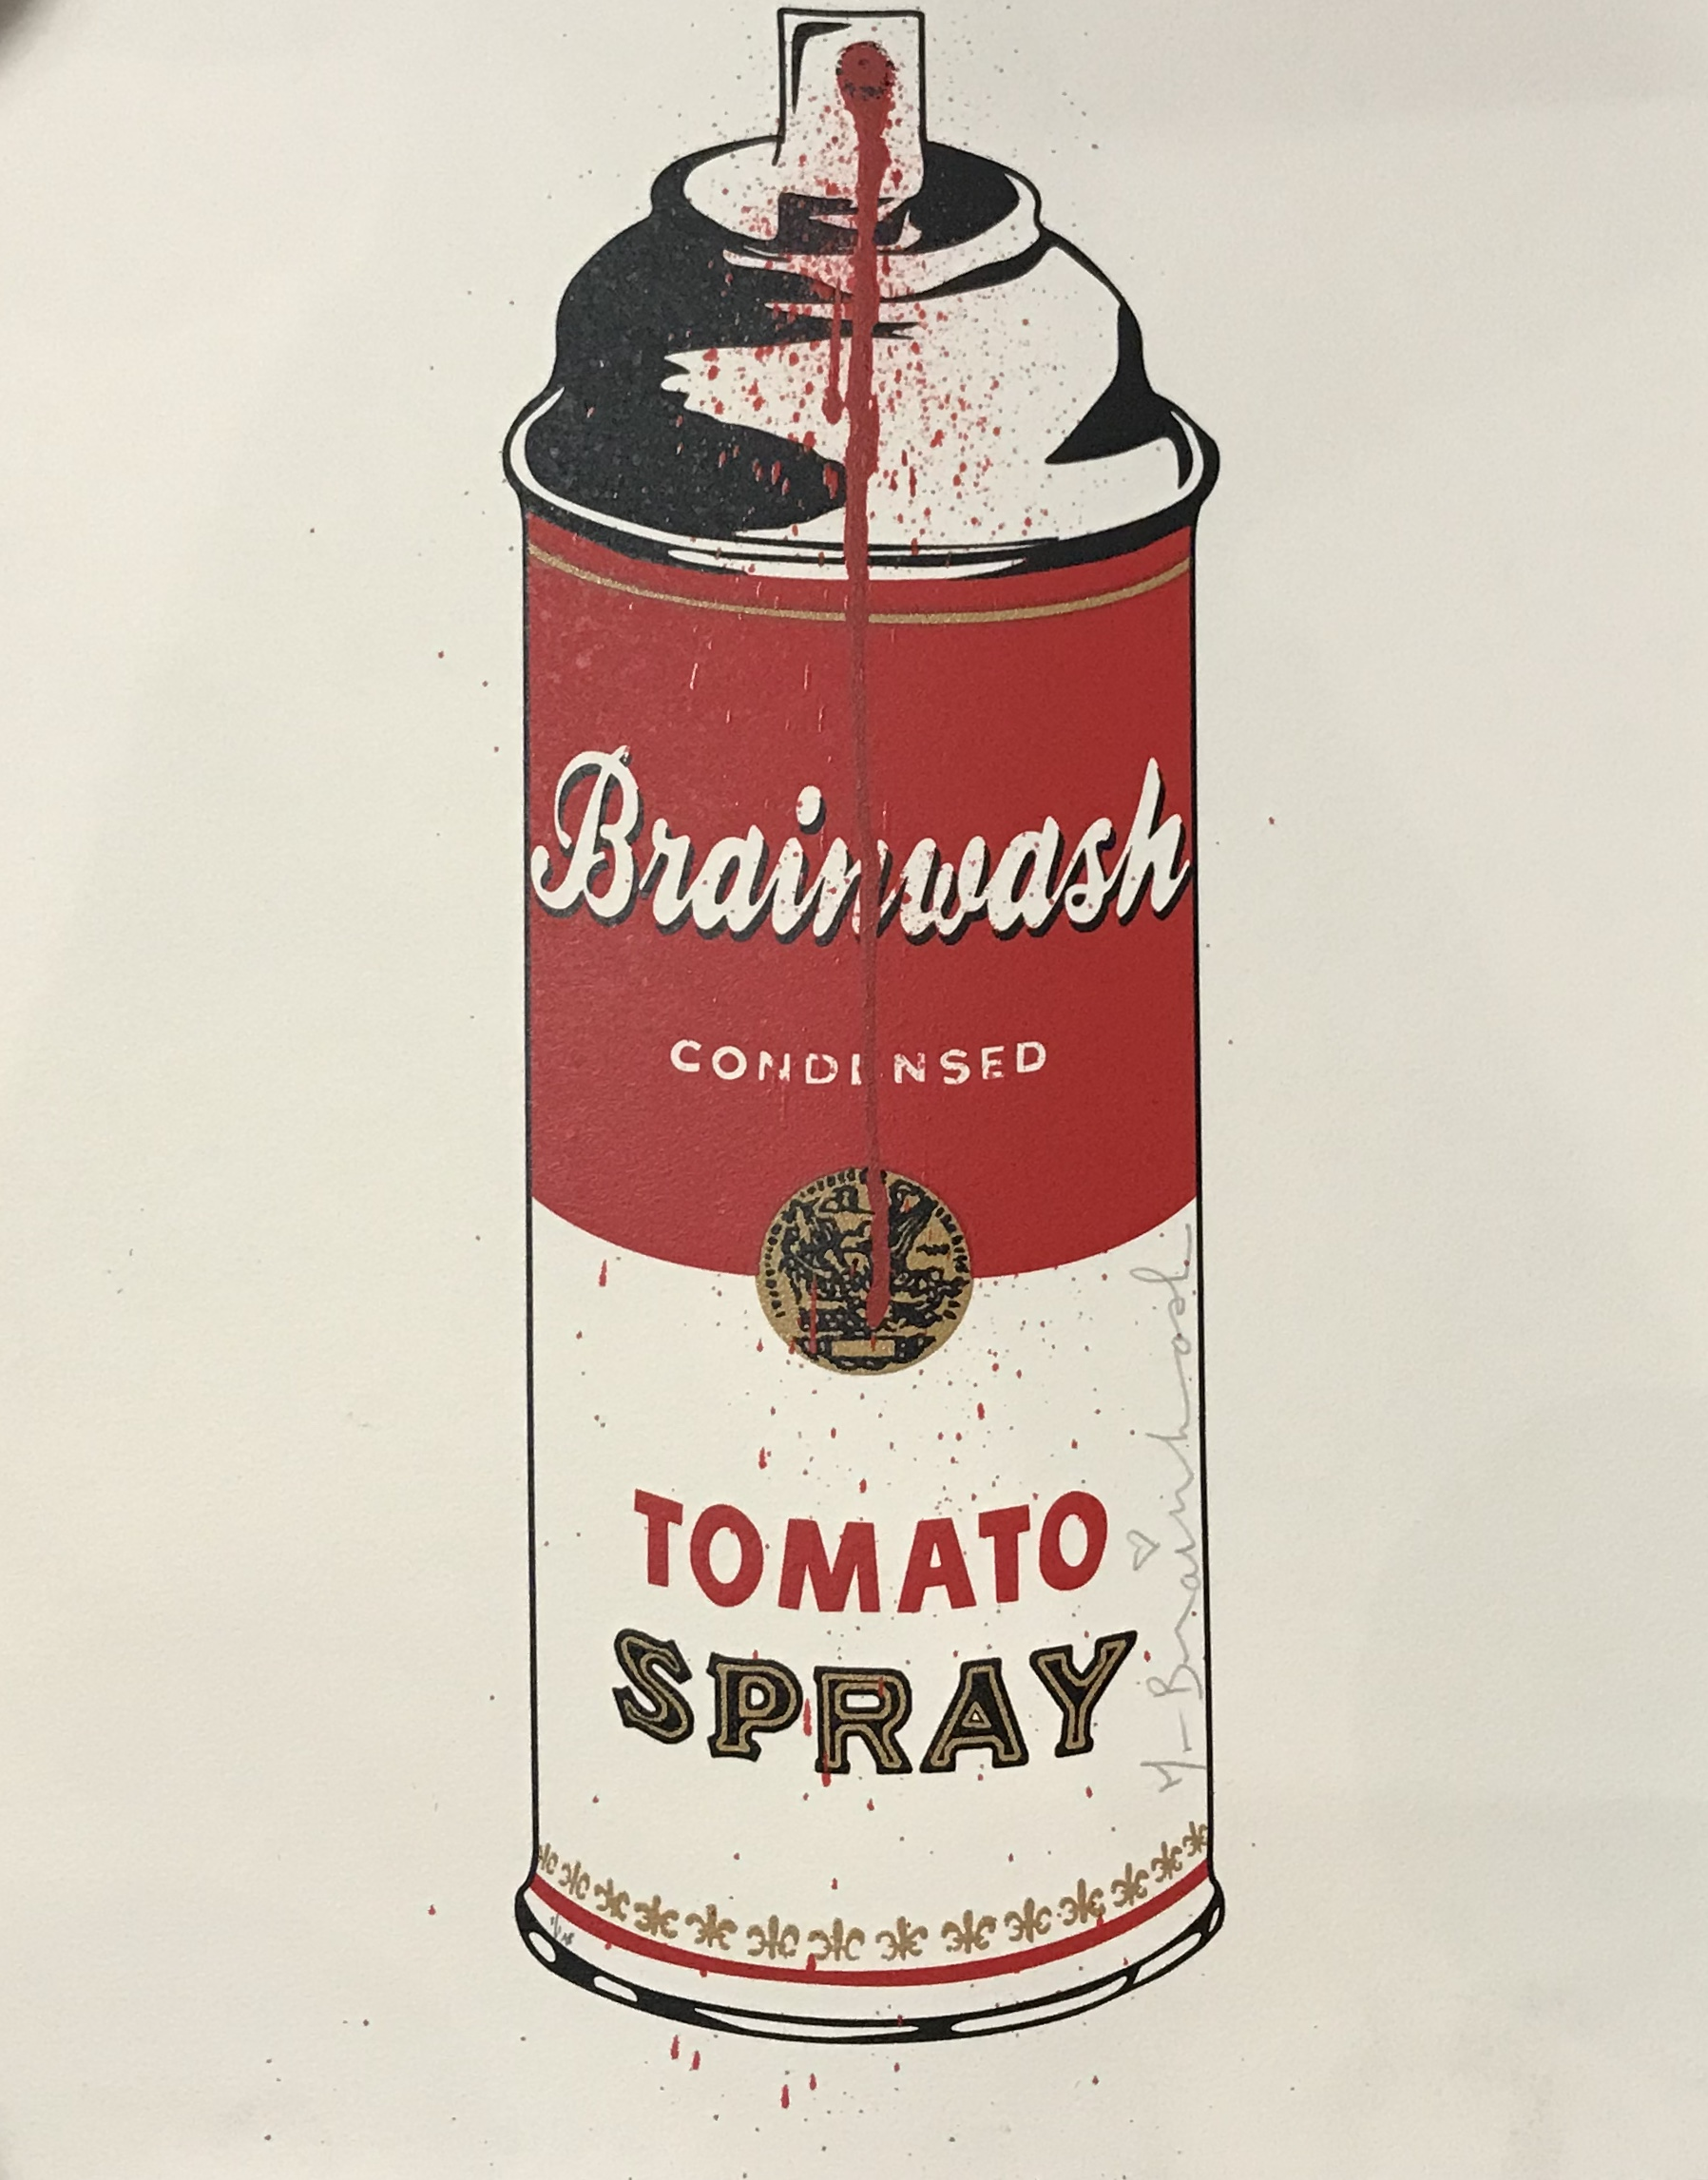 Brainwash spray